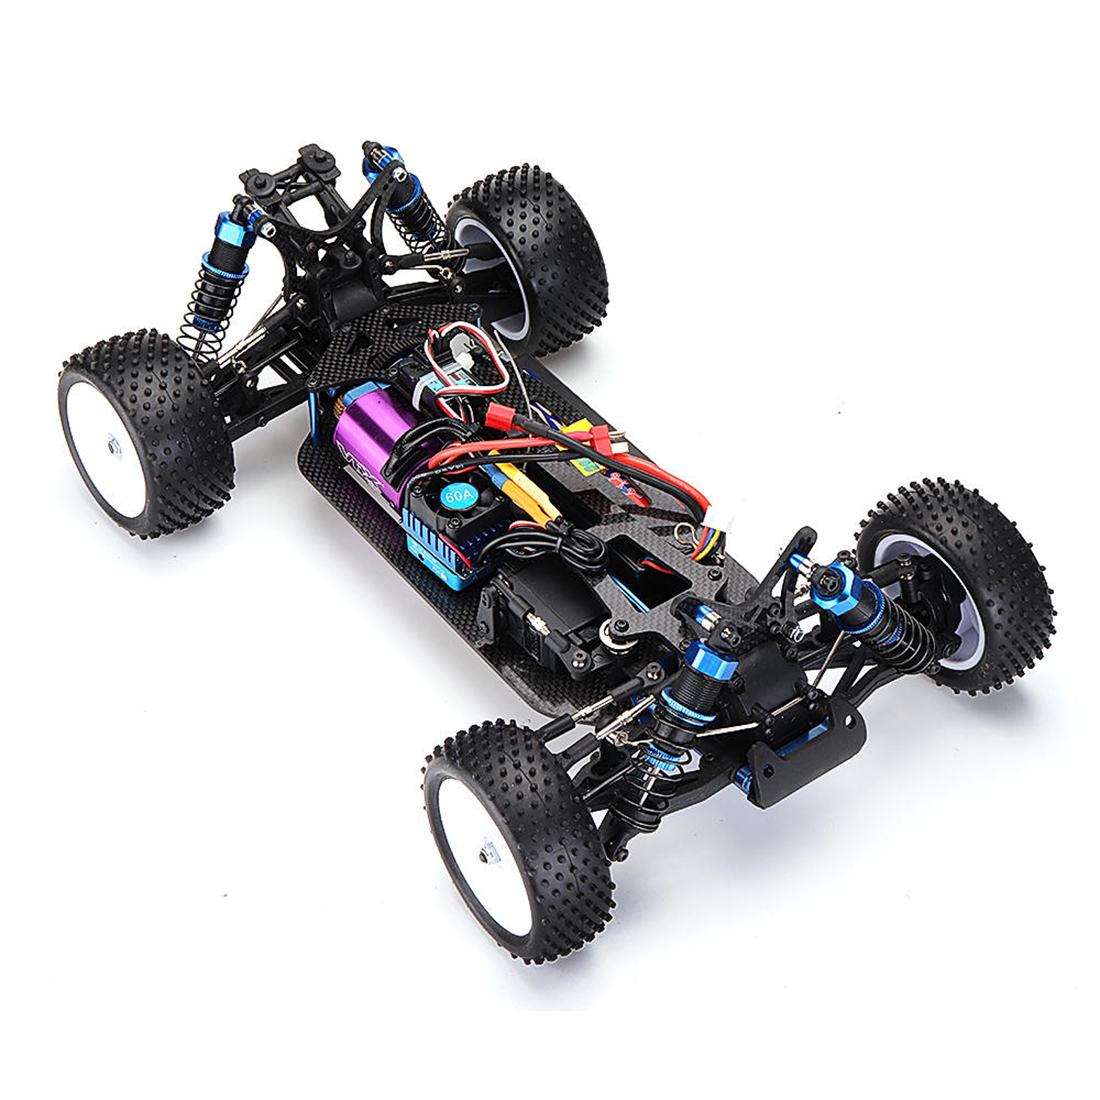 VRX RH1017PR <font><b>1/10</b></font> <font><b>Scale</b></font> 4WD Brushless RTR Off-Road Buggy High Speed 2.4GHz <font><b>RC</b></font> Car(With 60A ESC, 3650 Motor)- R0072 Black Red image